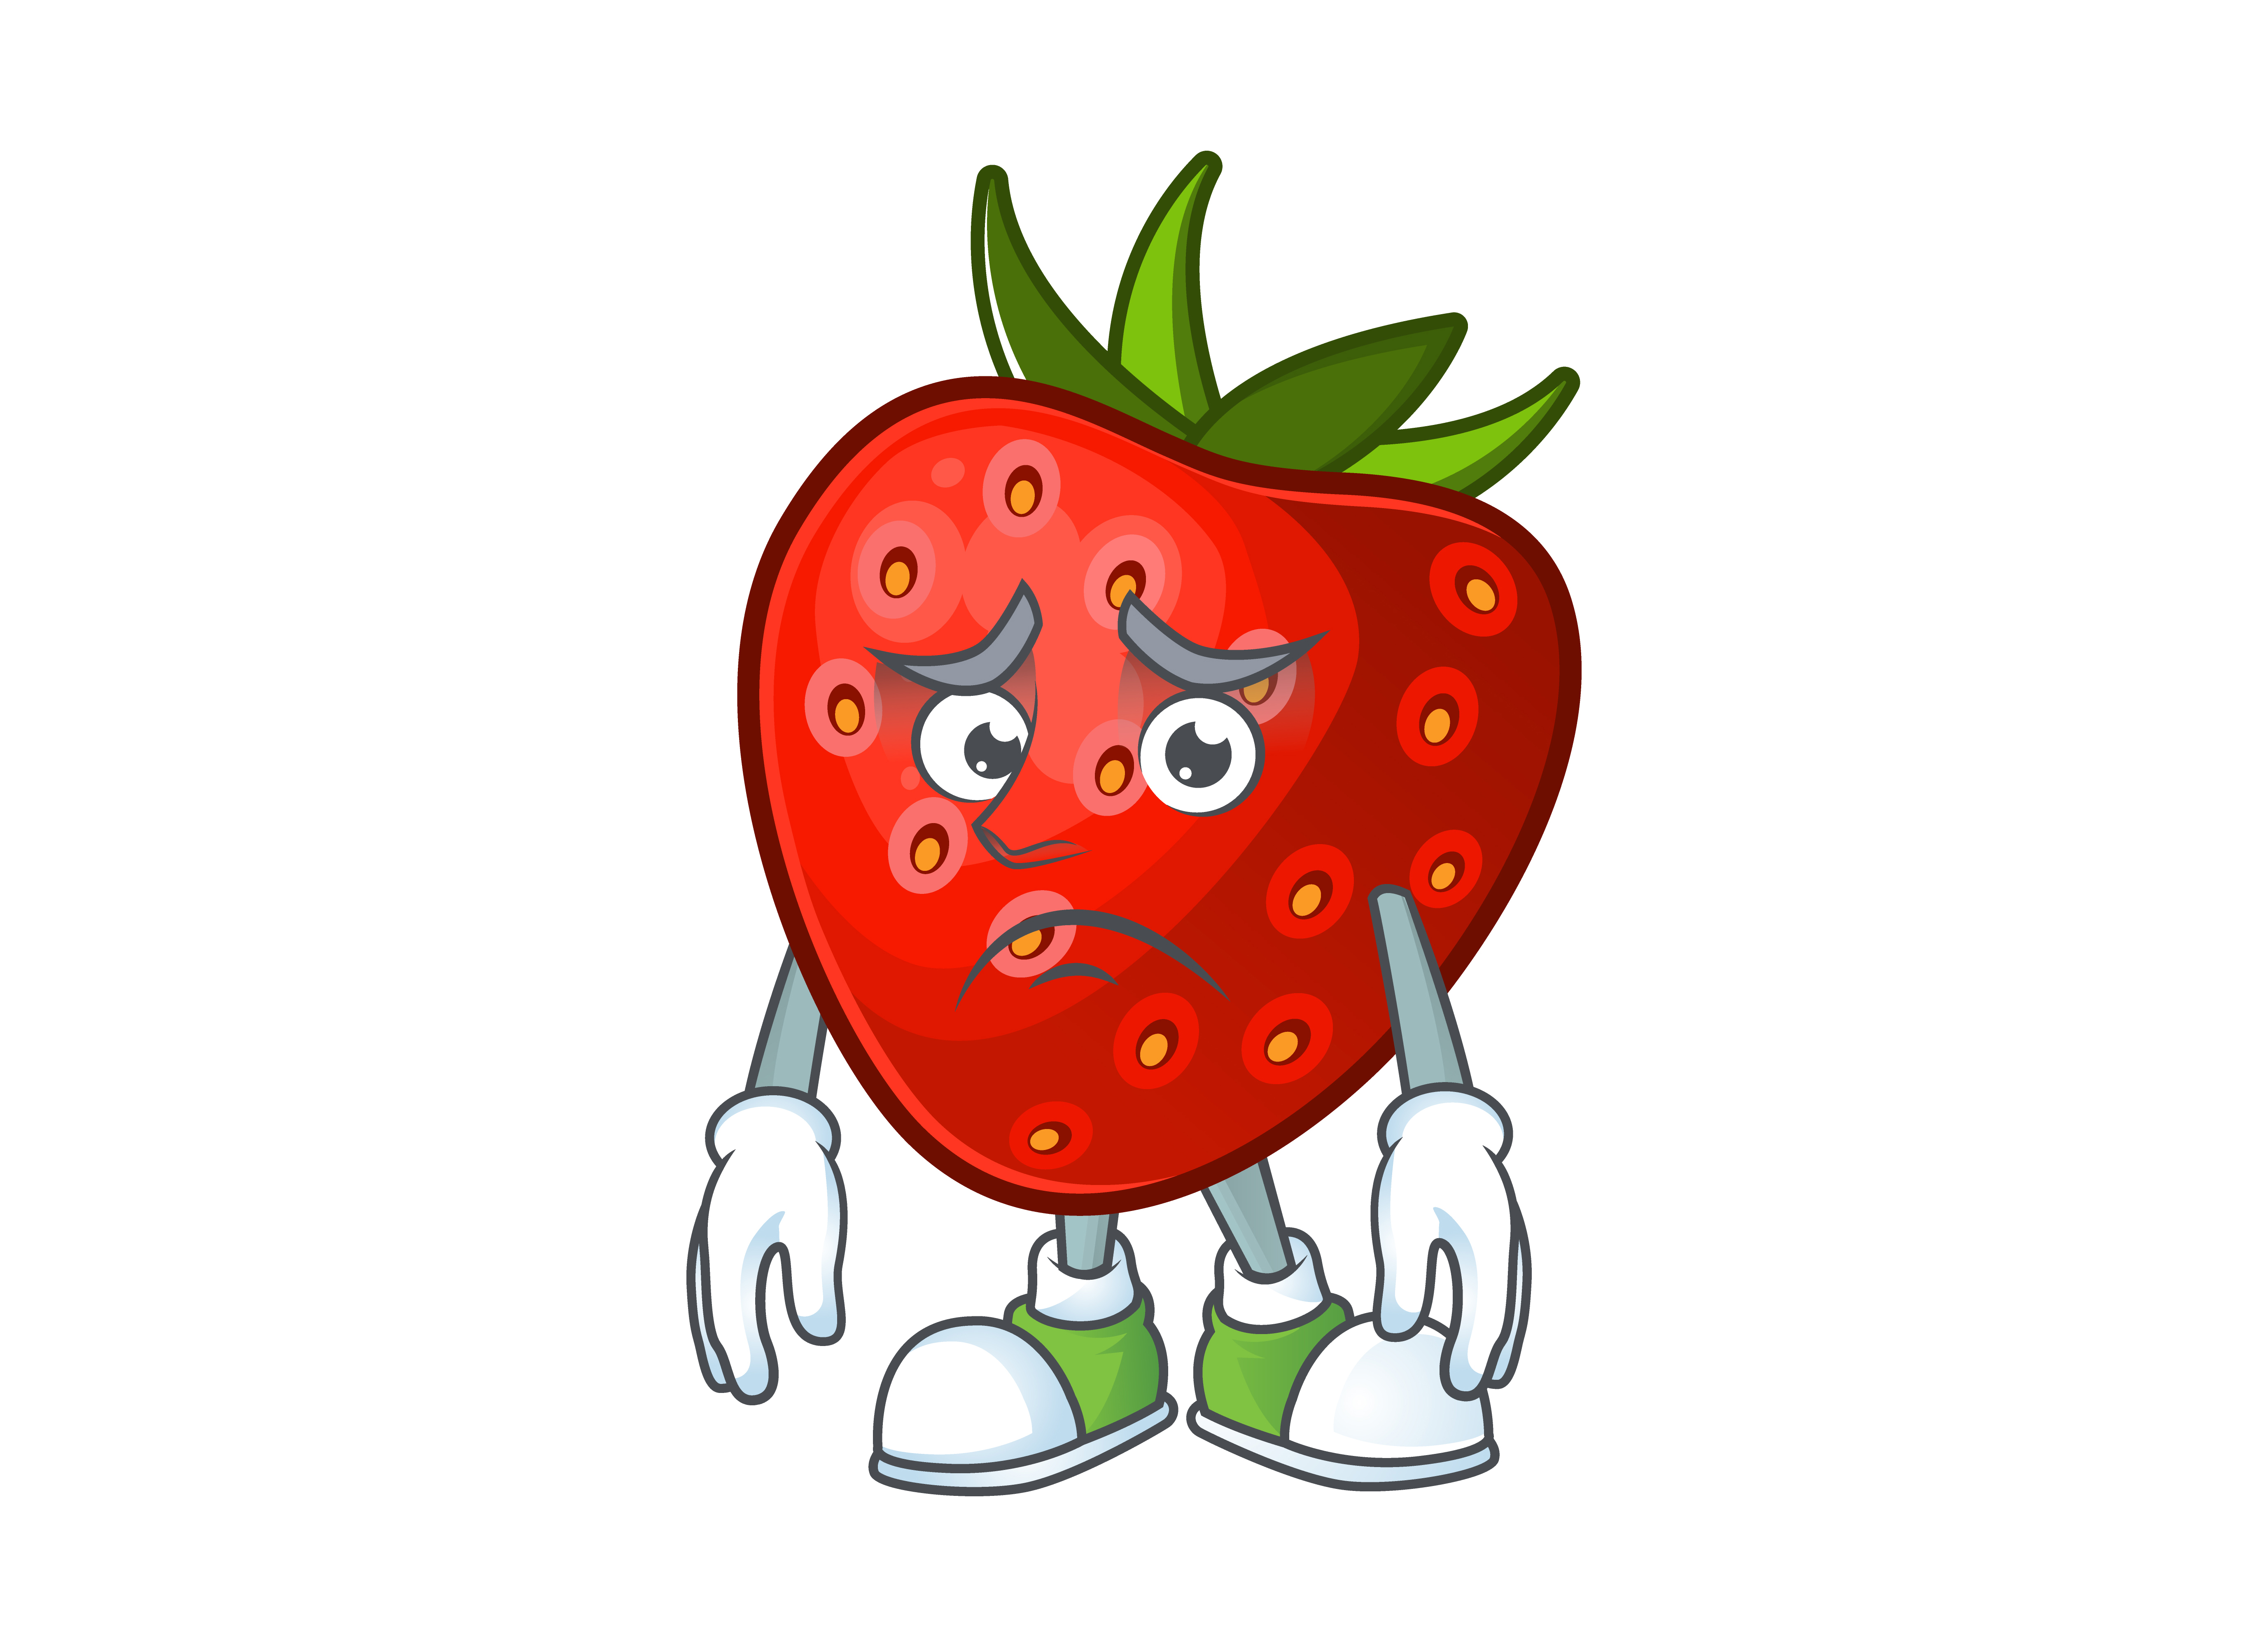 Download Free Strawberry Cartoon Character Style Graphic By Kongvector2020 Creative Fabrica for Cricut Explore, Silhouette and other cutting machines.